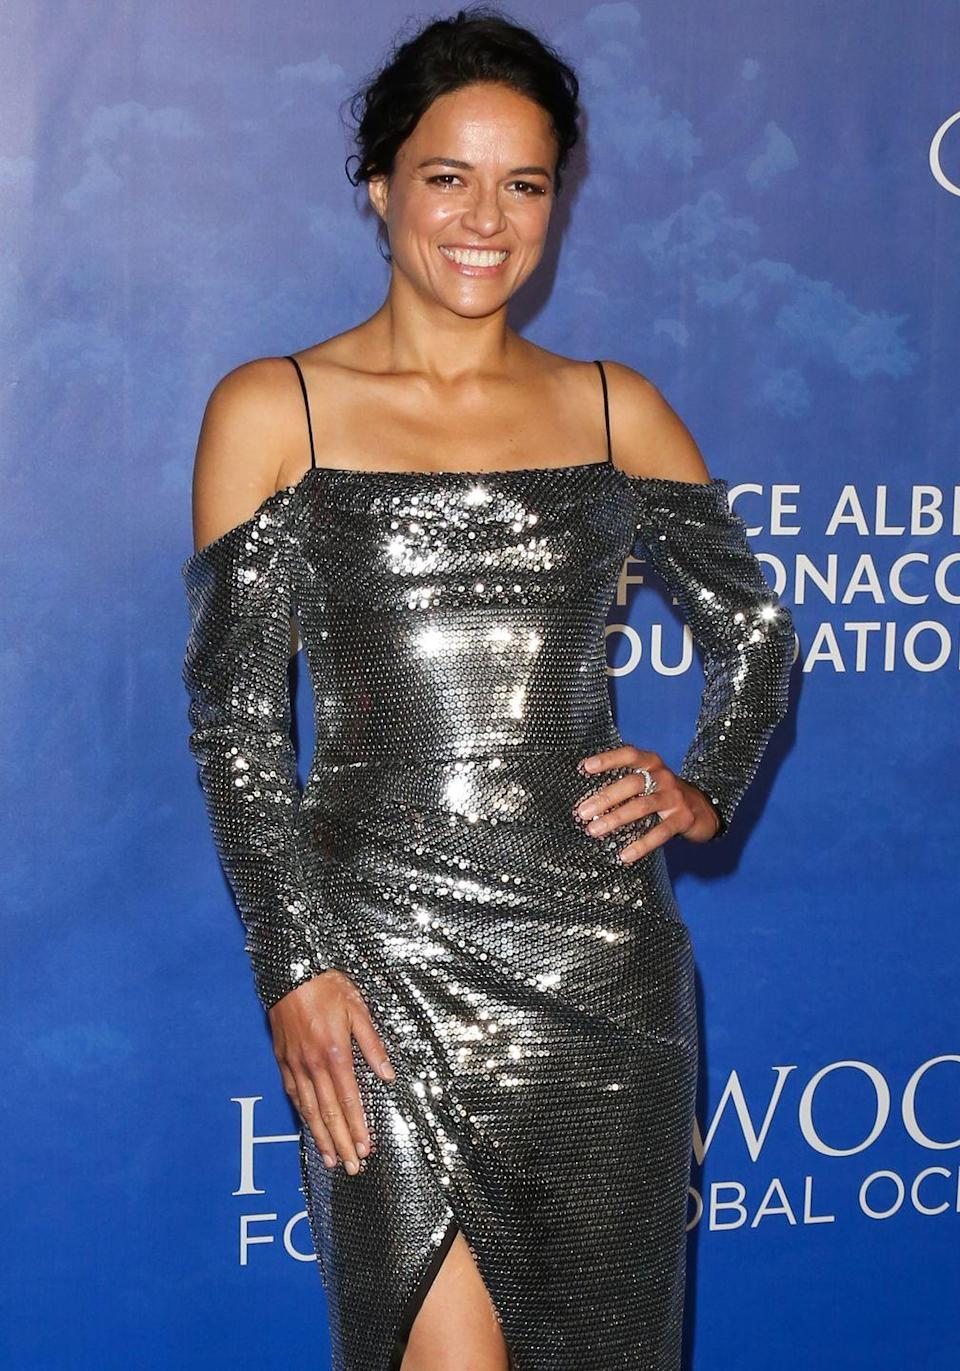 <p>After her big break in <em>The Fast and the Furious</em>, Michelle Rodriguez starred in major films like <em>Blue Crush </em>and <em>Resident Evil</em>.However, the actress is still most well-known for her work in the action films and has continued to portray the love interest of Vin Diesel's character throughout the <em>Fast and Furious </em>franchise. </p>